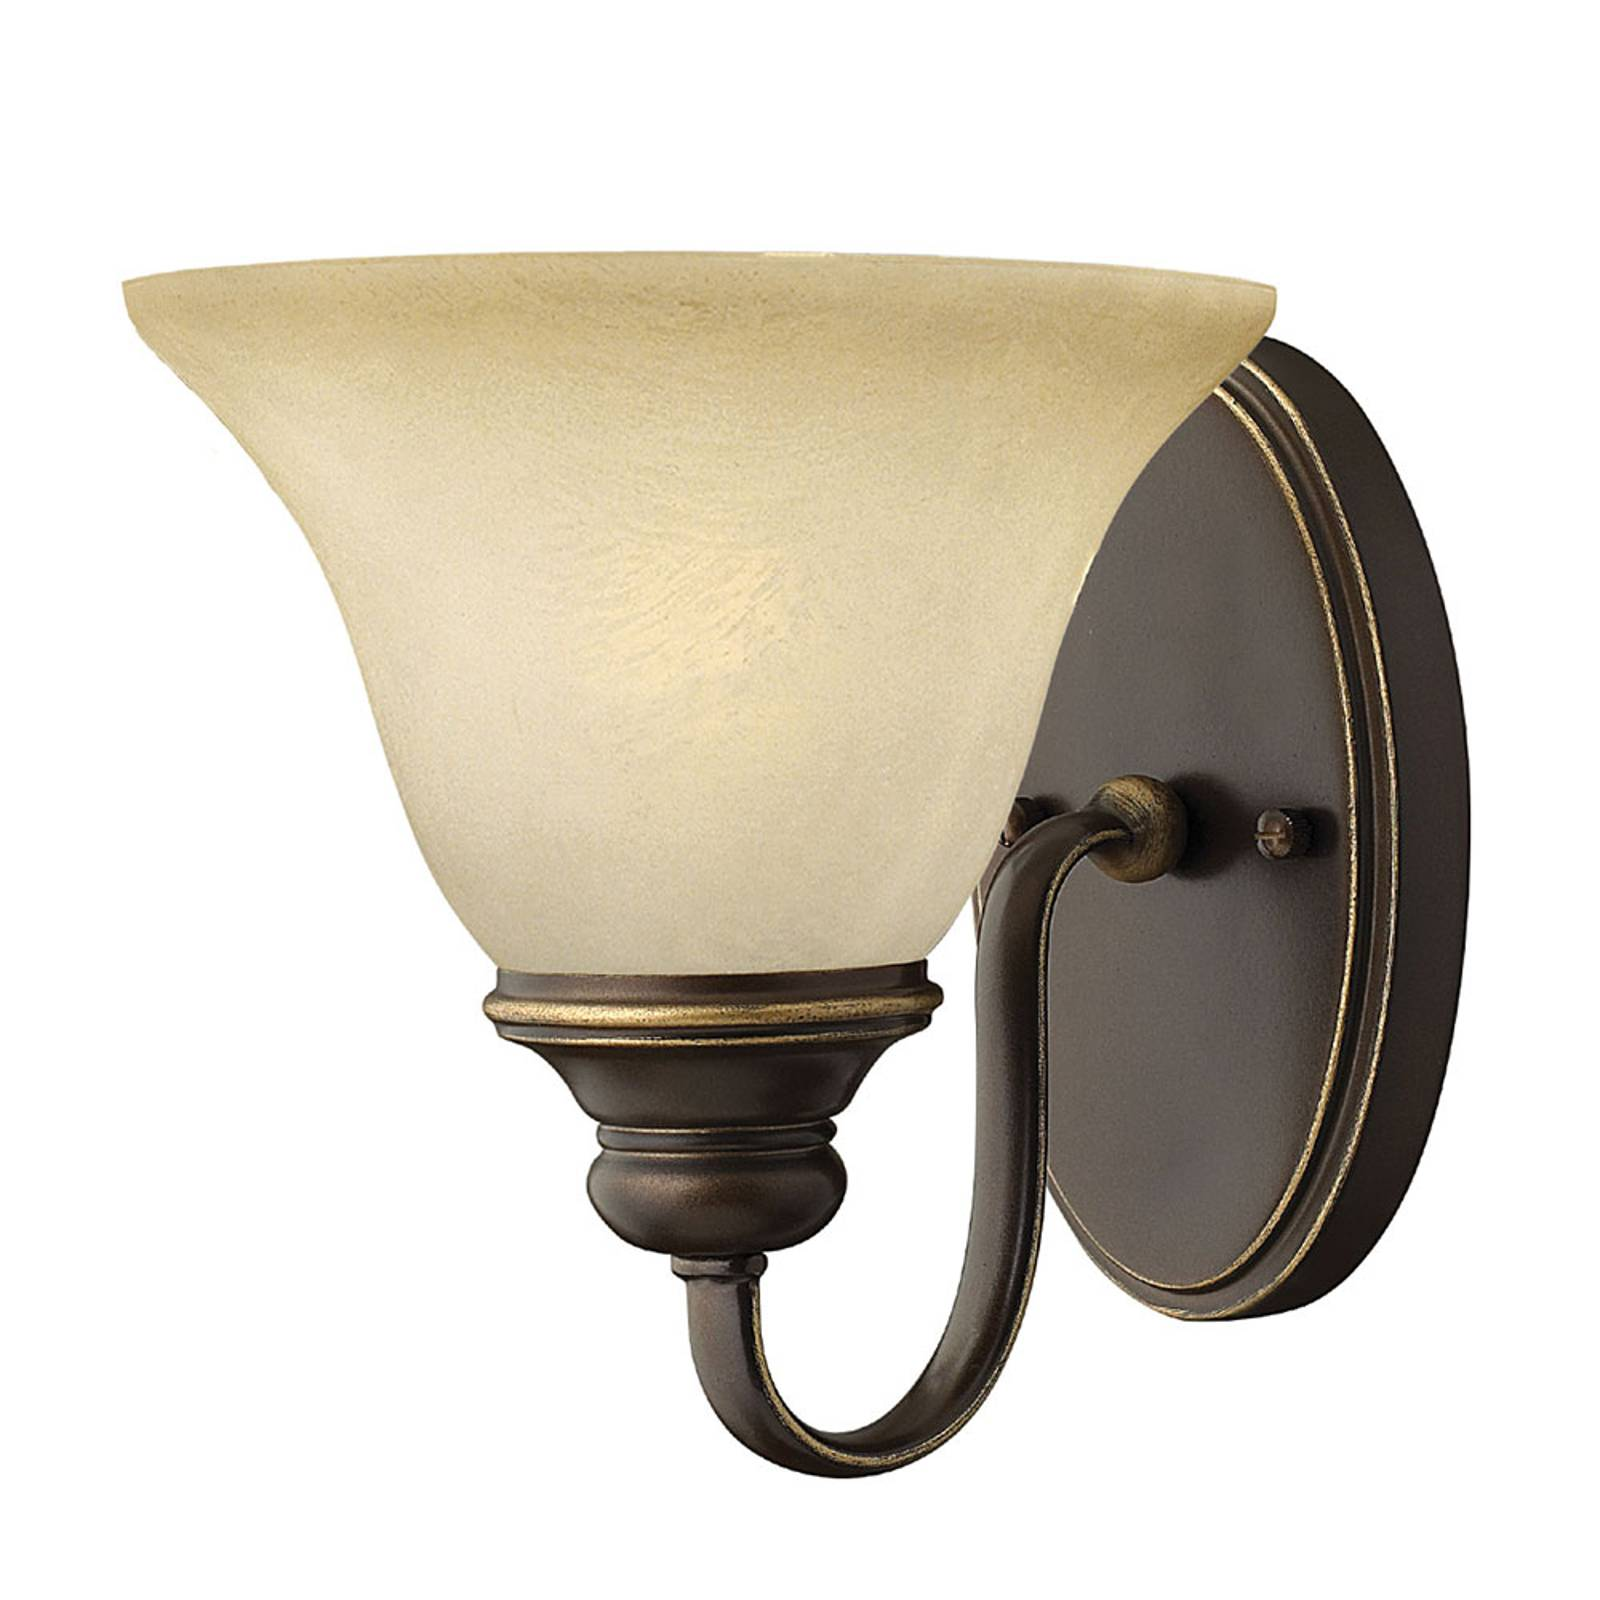 Cello Wall Light Classic from HINKLEY